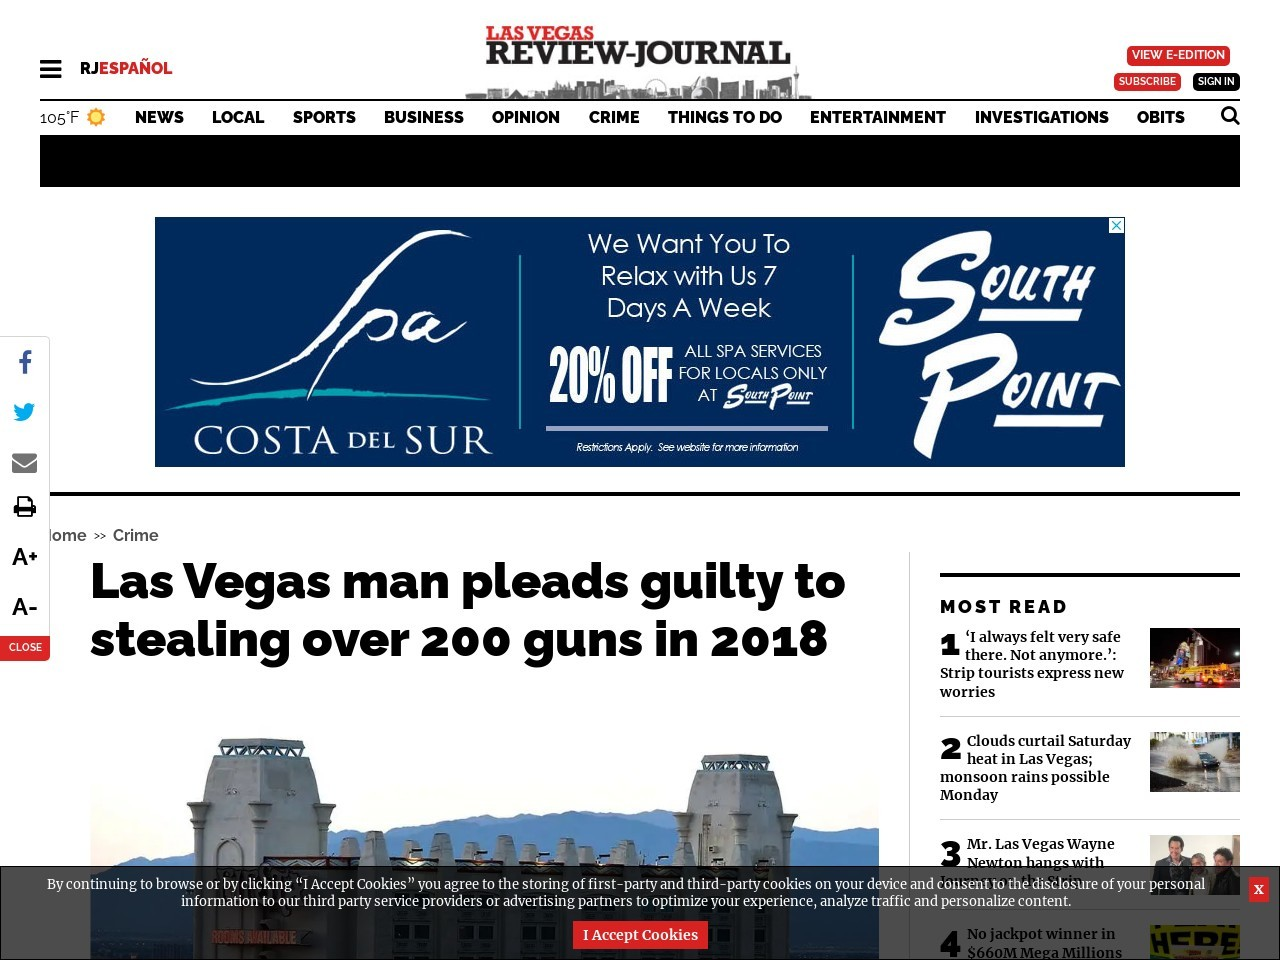 Las Vegas man pleads guilty to stealing over 200 guns in 2018